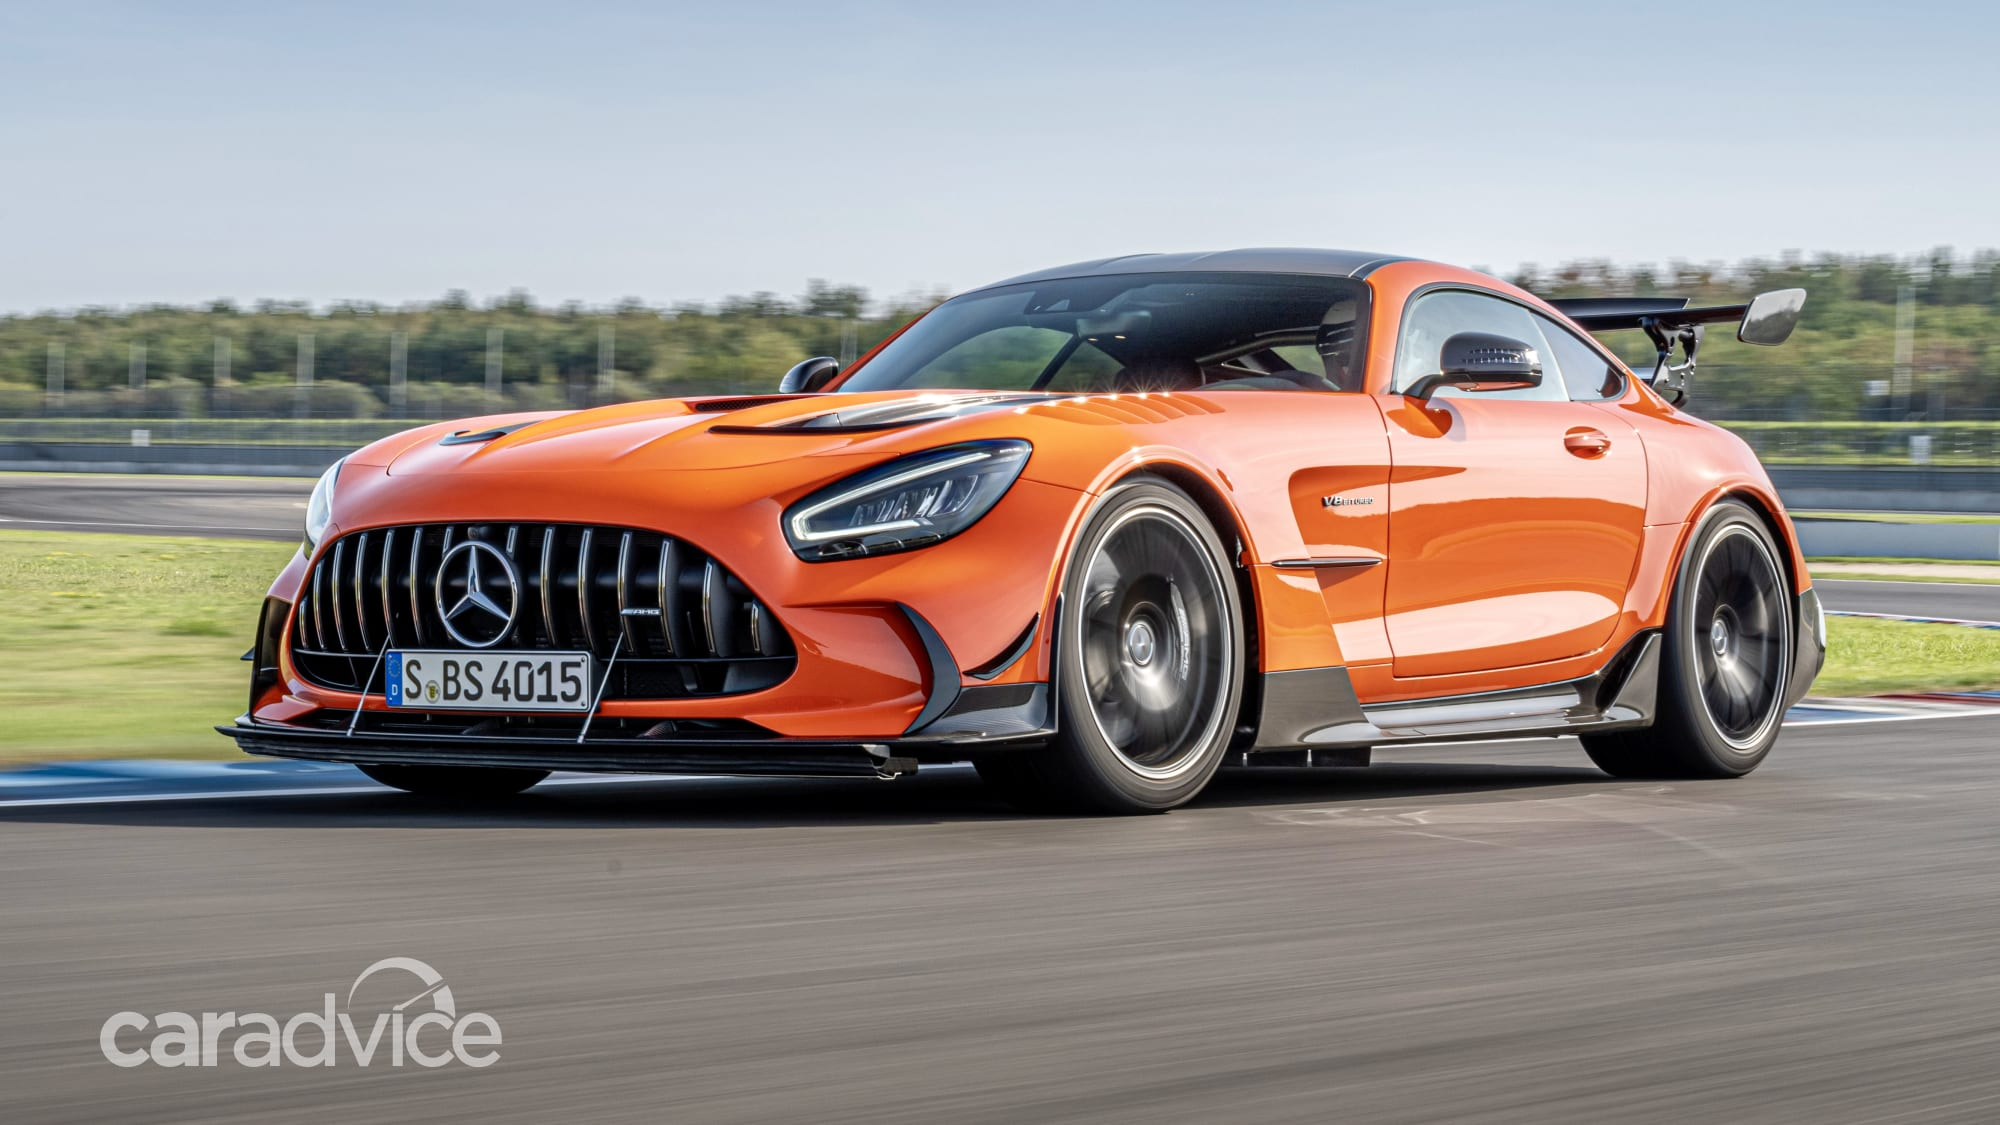 2021 mercedes-amg gt black series price and specs: most